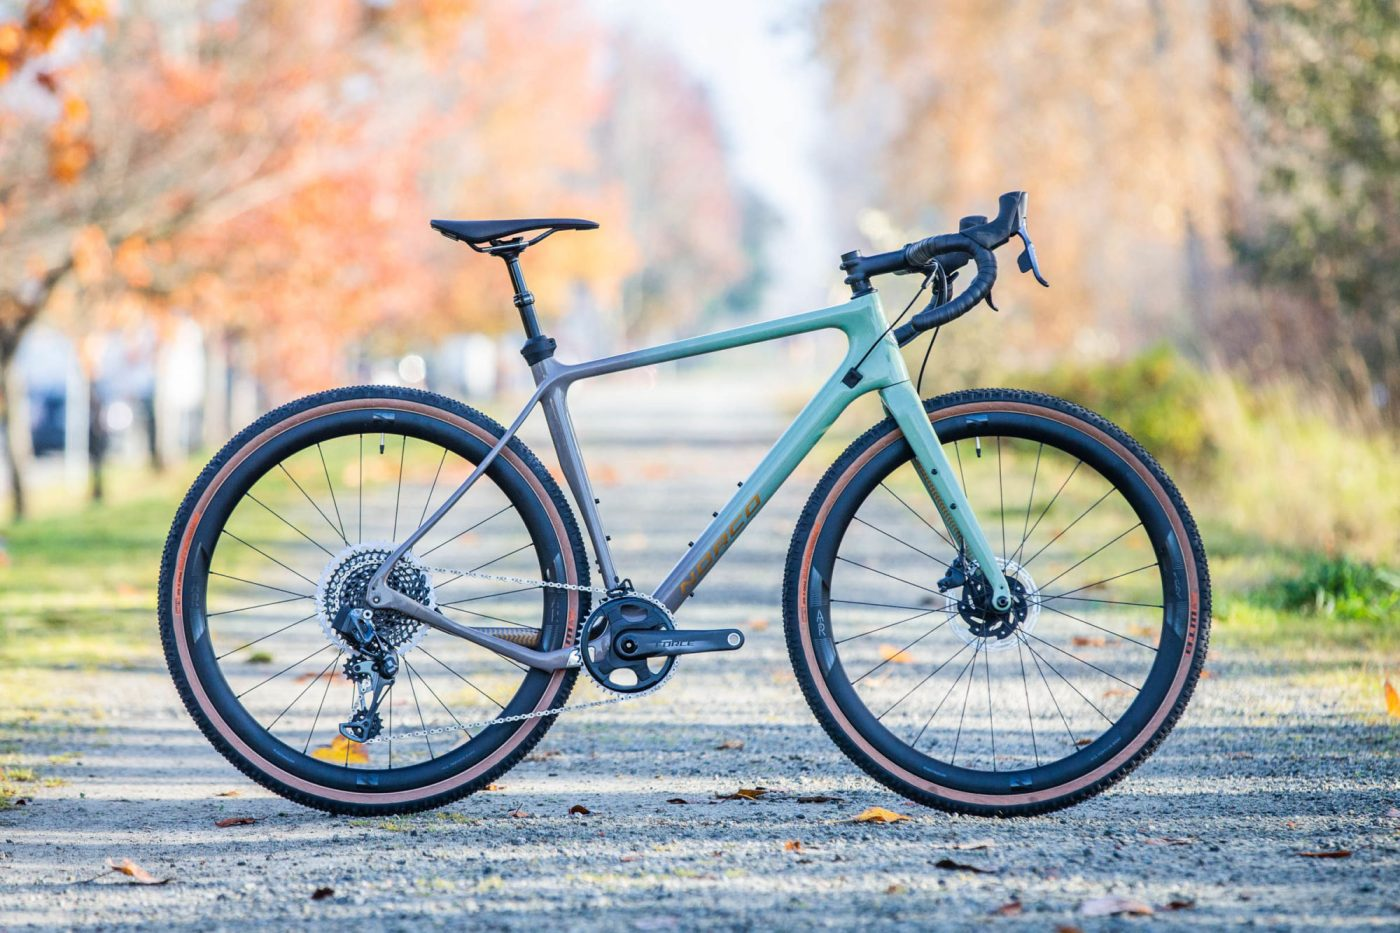 The 2020 Norco Search XR Carbon Revealed: New Builds and Fresh Paint 3